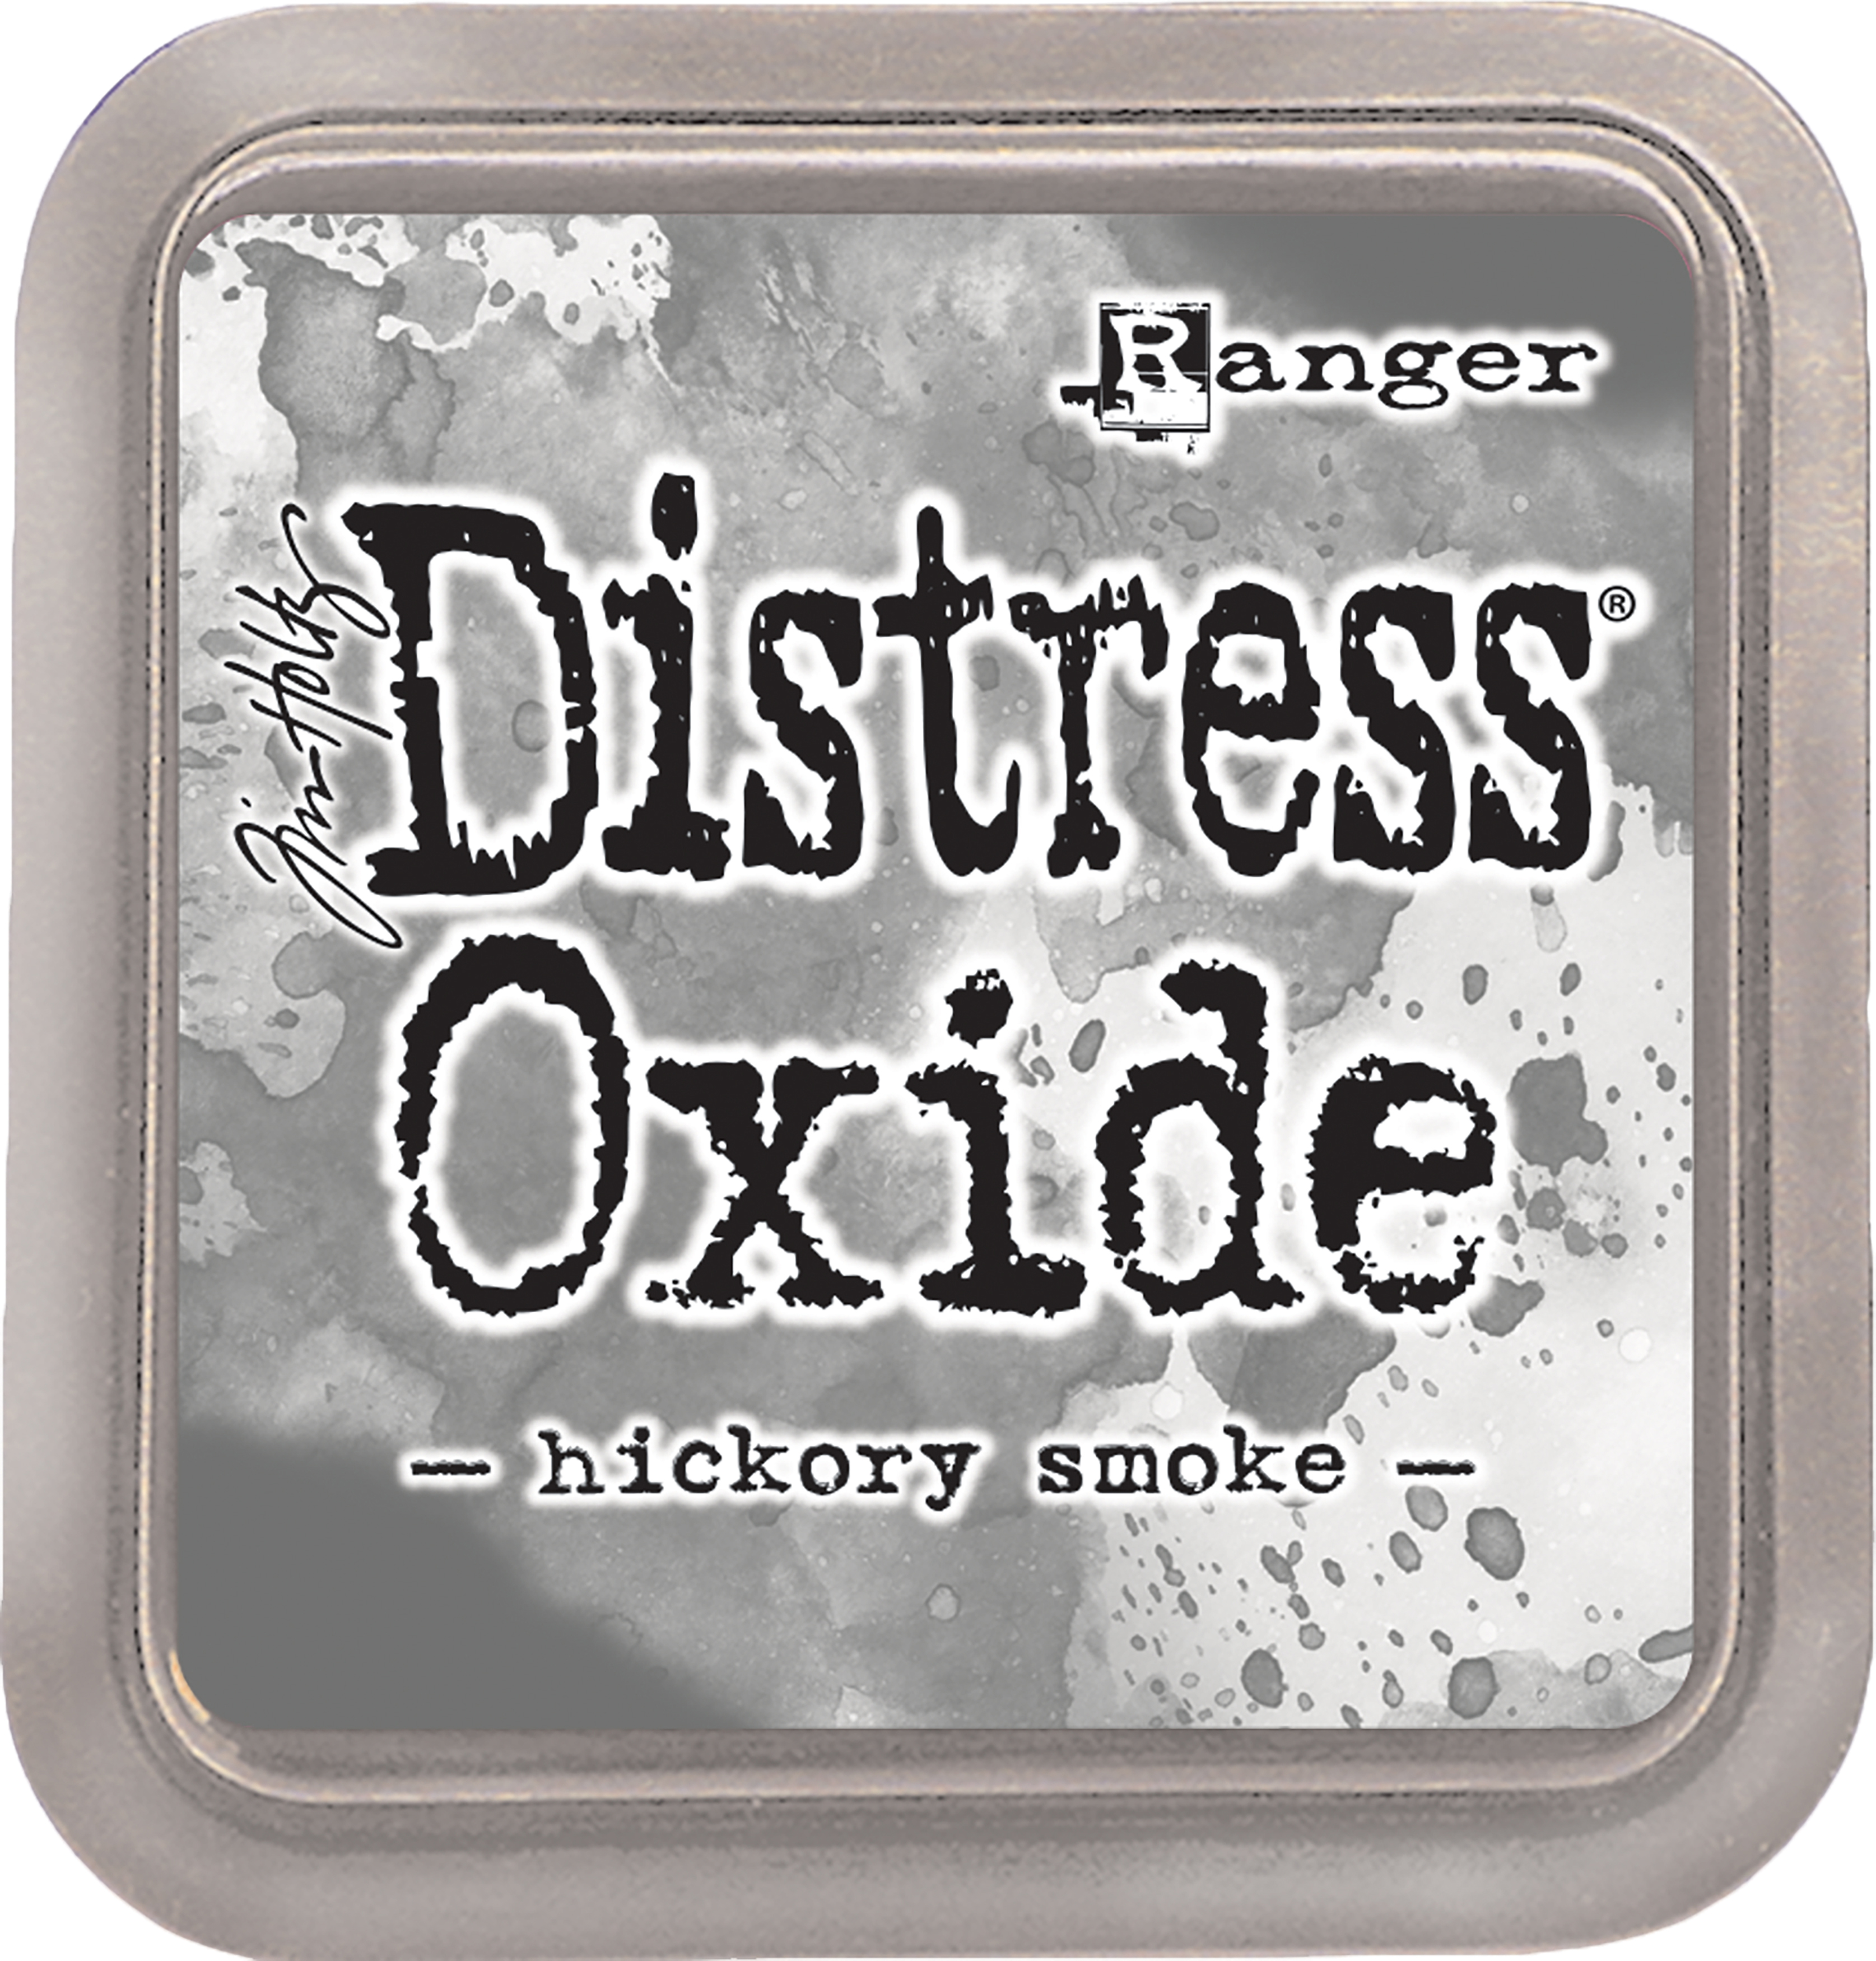 Tim Holtz Distress Oxides Ink Pad-Hickory Smoke